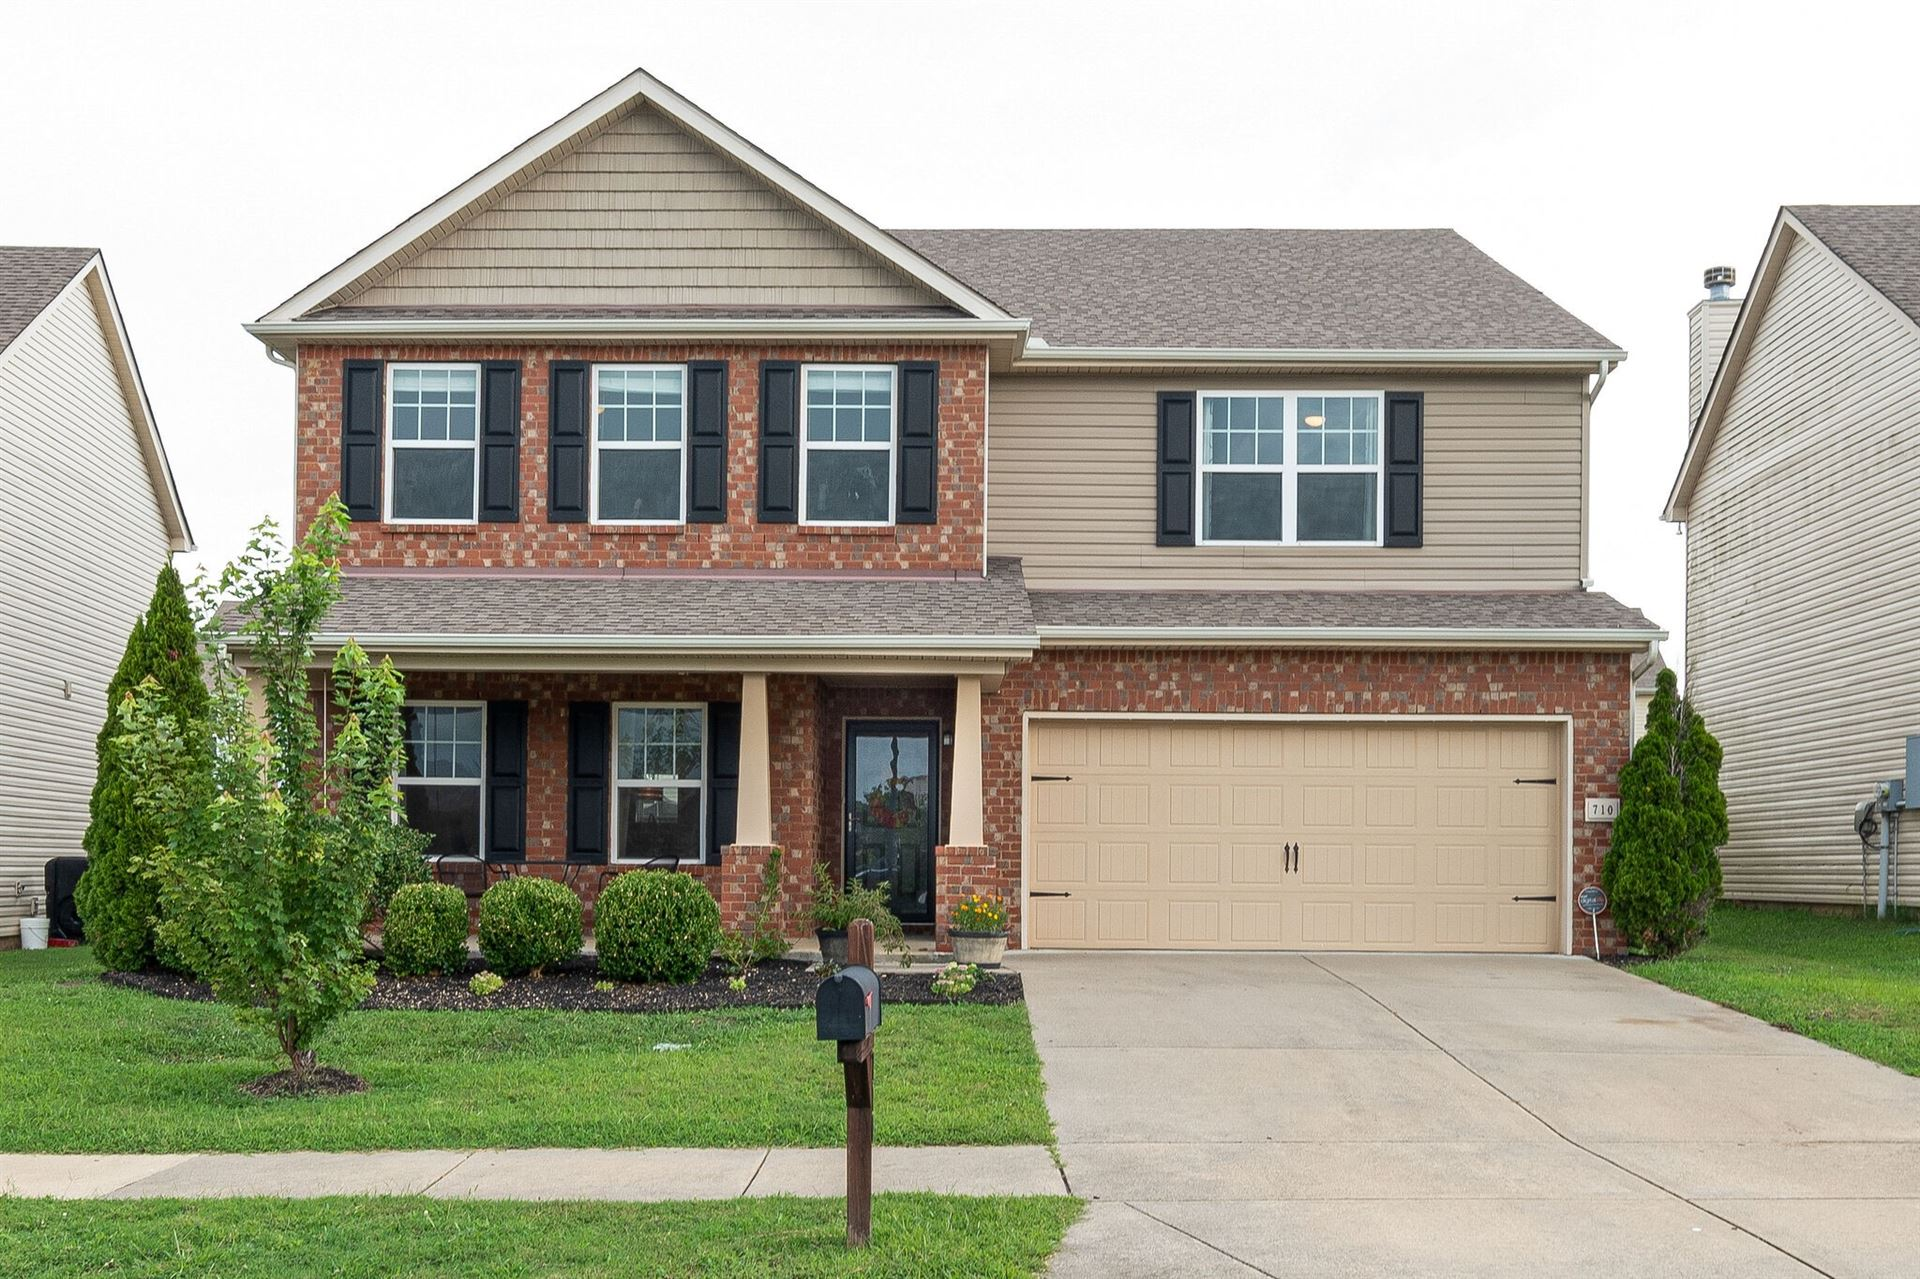 710 White Oak Dr, Lebanon, TN 37087 - MLS#: 2179543